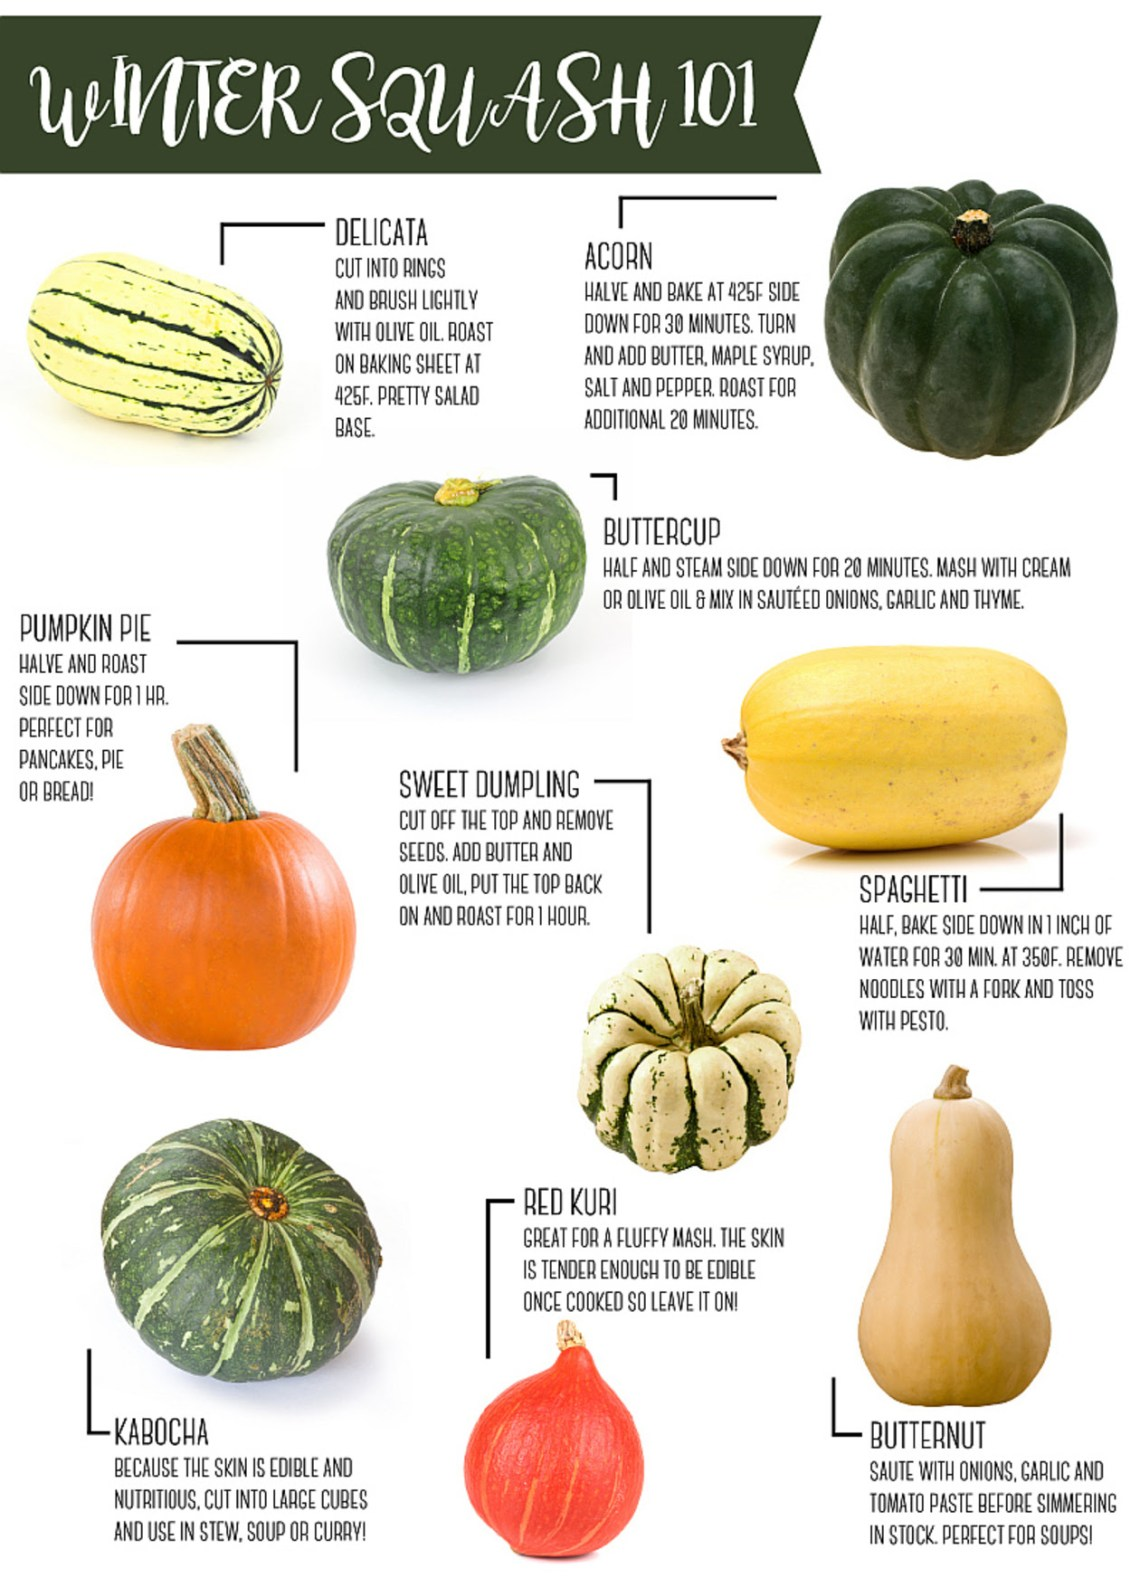 Winter Squash Guide| Chef & Shower Blog | Chef & Shower | Kitchen and bath blog